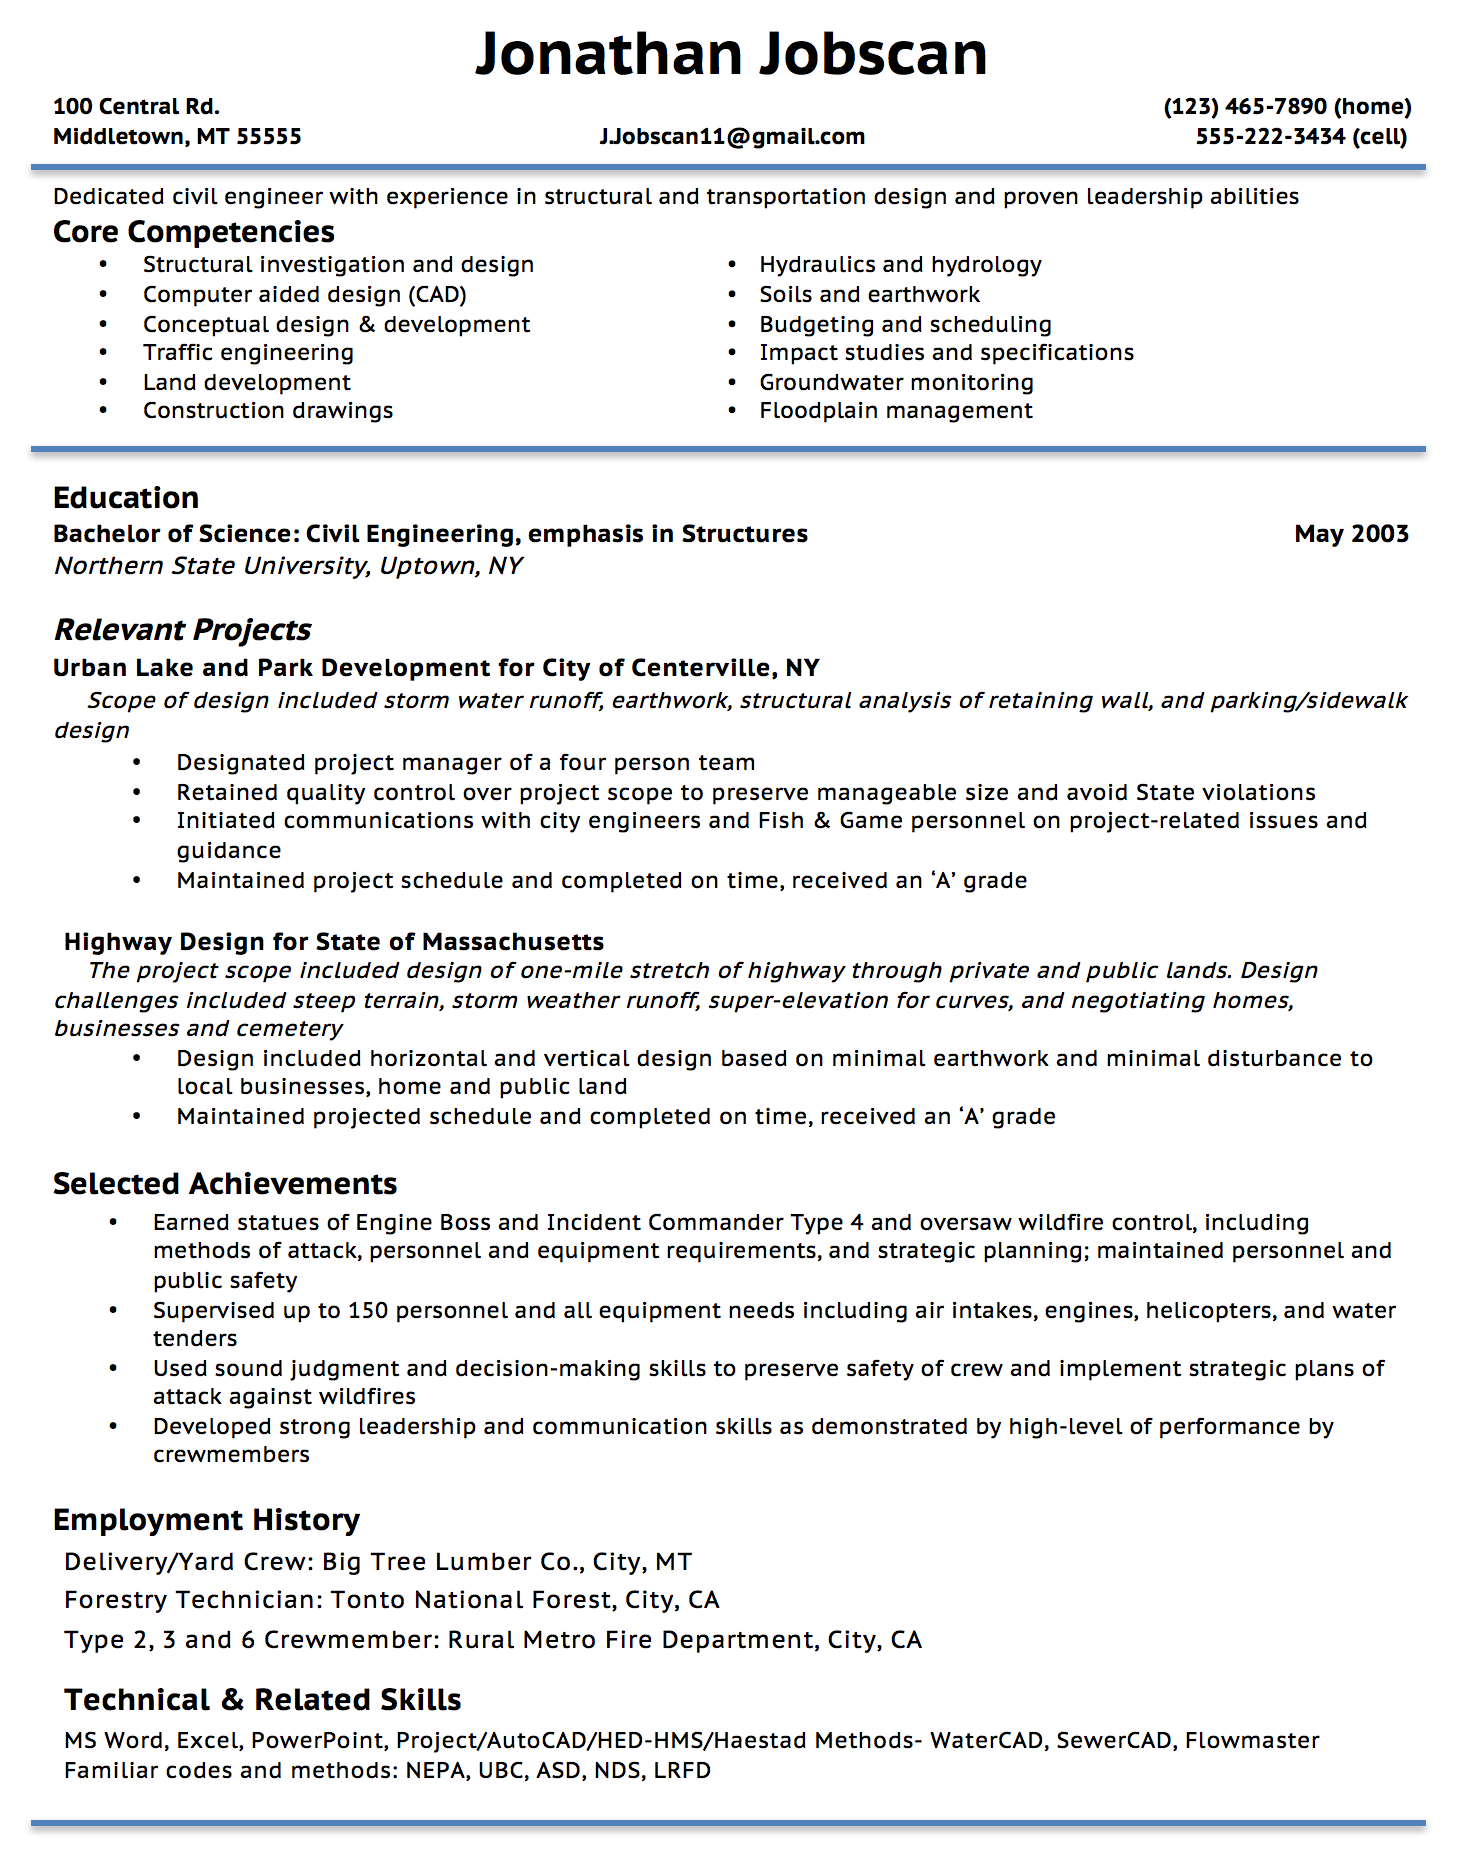 Picnictoimpeachus  Remarkable Resume Writing Guide  Jobscan With Foxy Example Of A Functional Resume Format With Alluring Talent Acquisition Resume Also Sales Sample Resume In Addition Resume Builder Free Template And Cdl Truck Driver Resume As Well As Astronaut Resume Additionally What Is A Cover Letter In A Resume From Jobscanco With Picnictoimpeachus  Foxy Resume Writing Guide  Jobscan With Alluring Example Of A Functional Resume Format And Remarkable Talent Acquisition Resume Also Sales Sample Resume In Addition Resume Builder Free Template From Jobscanco